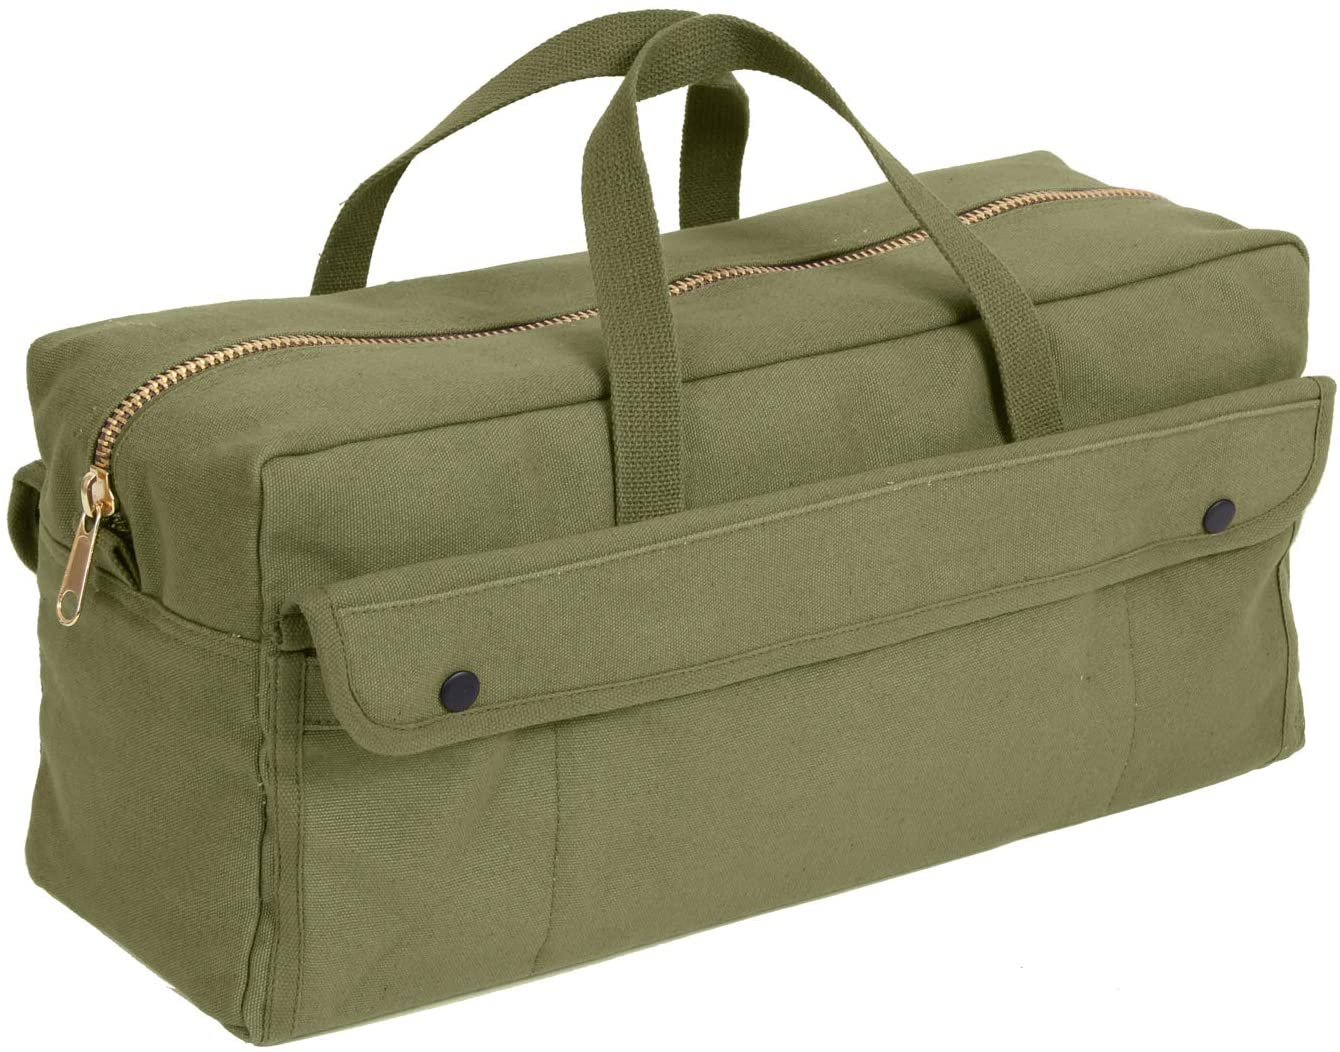 Rothco Canvas Jumbo Tool Bag With Brass Zipper, Olive Drab